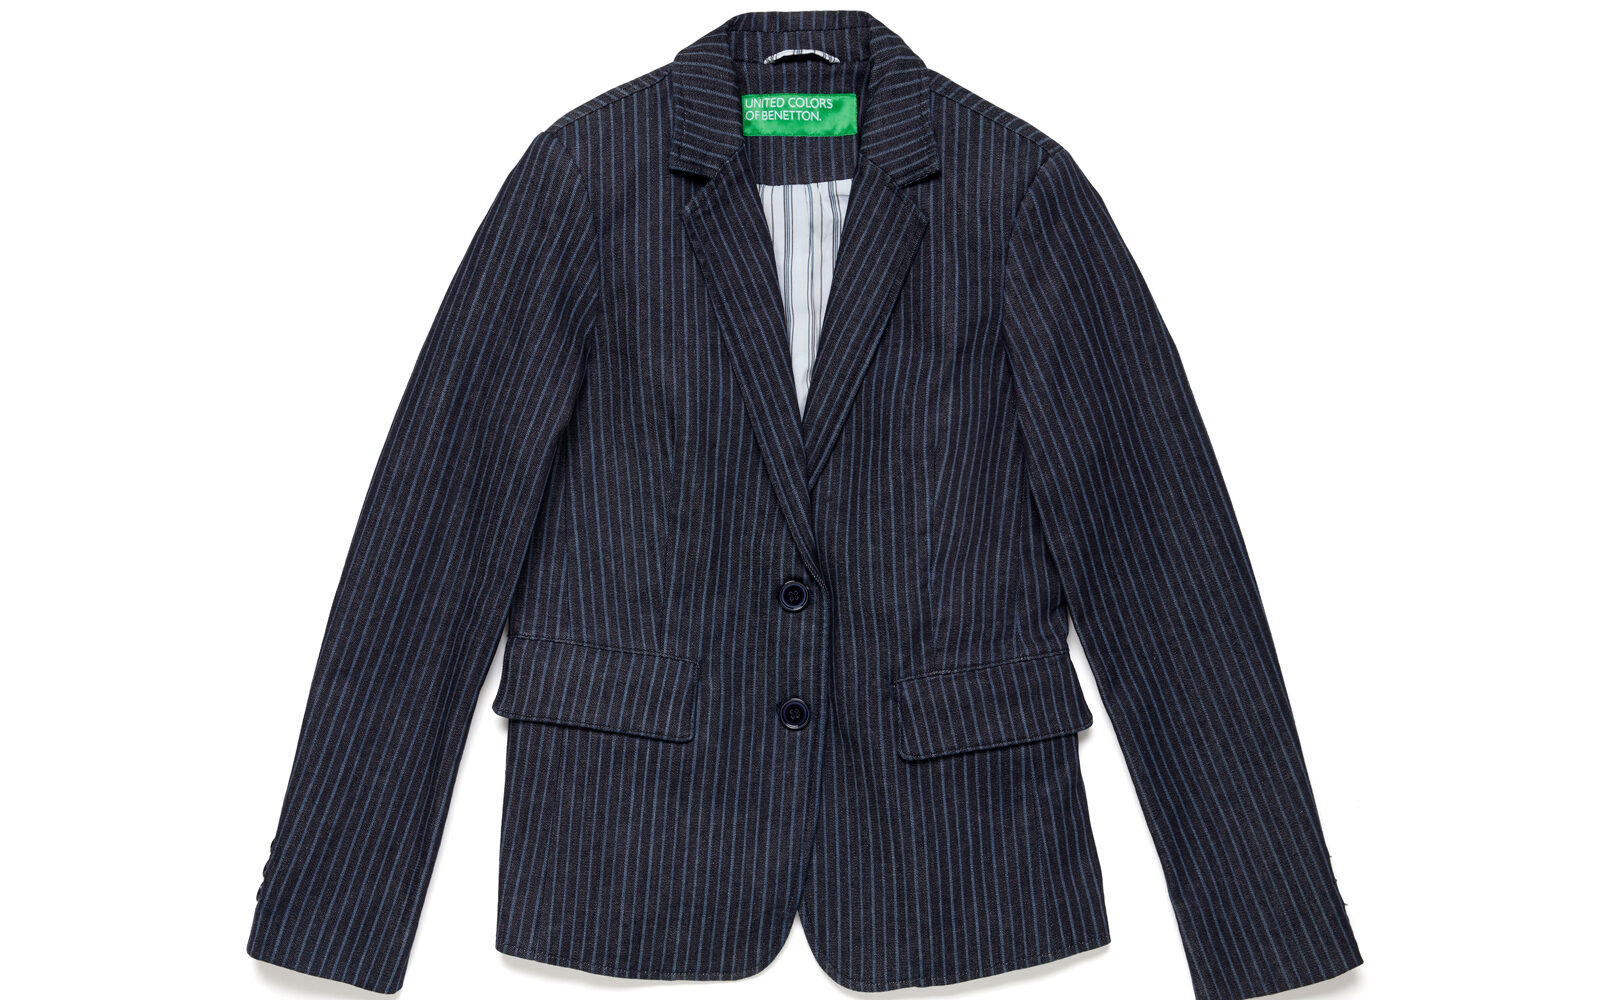 United-Colors-of-Benetton-189-euro-